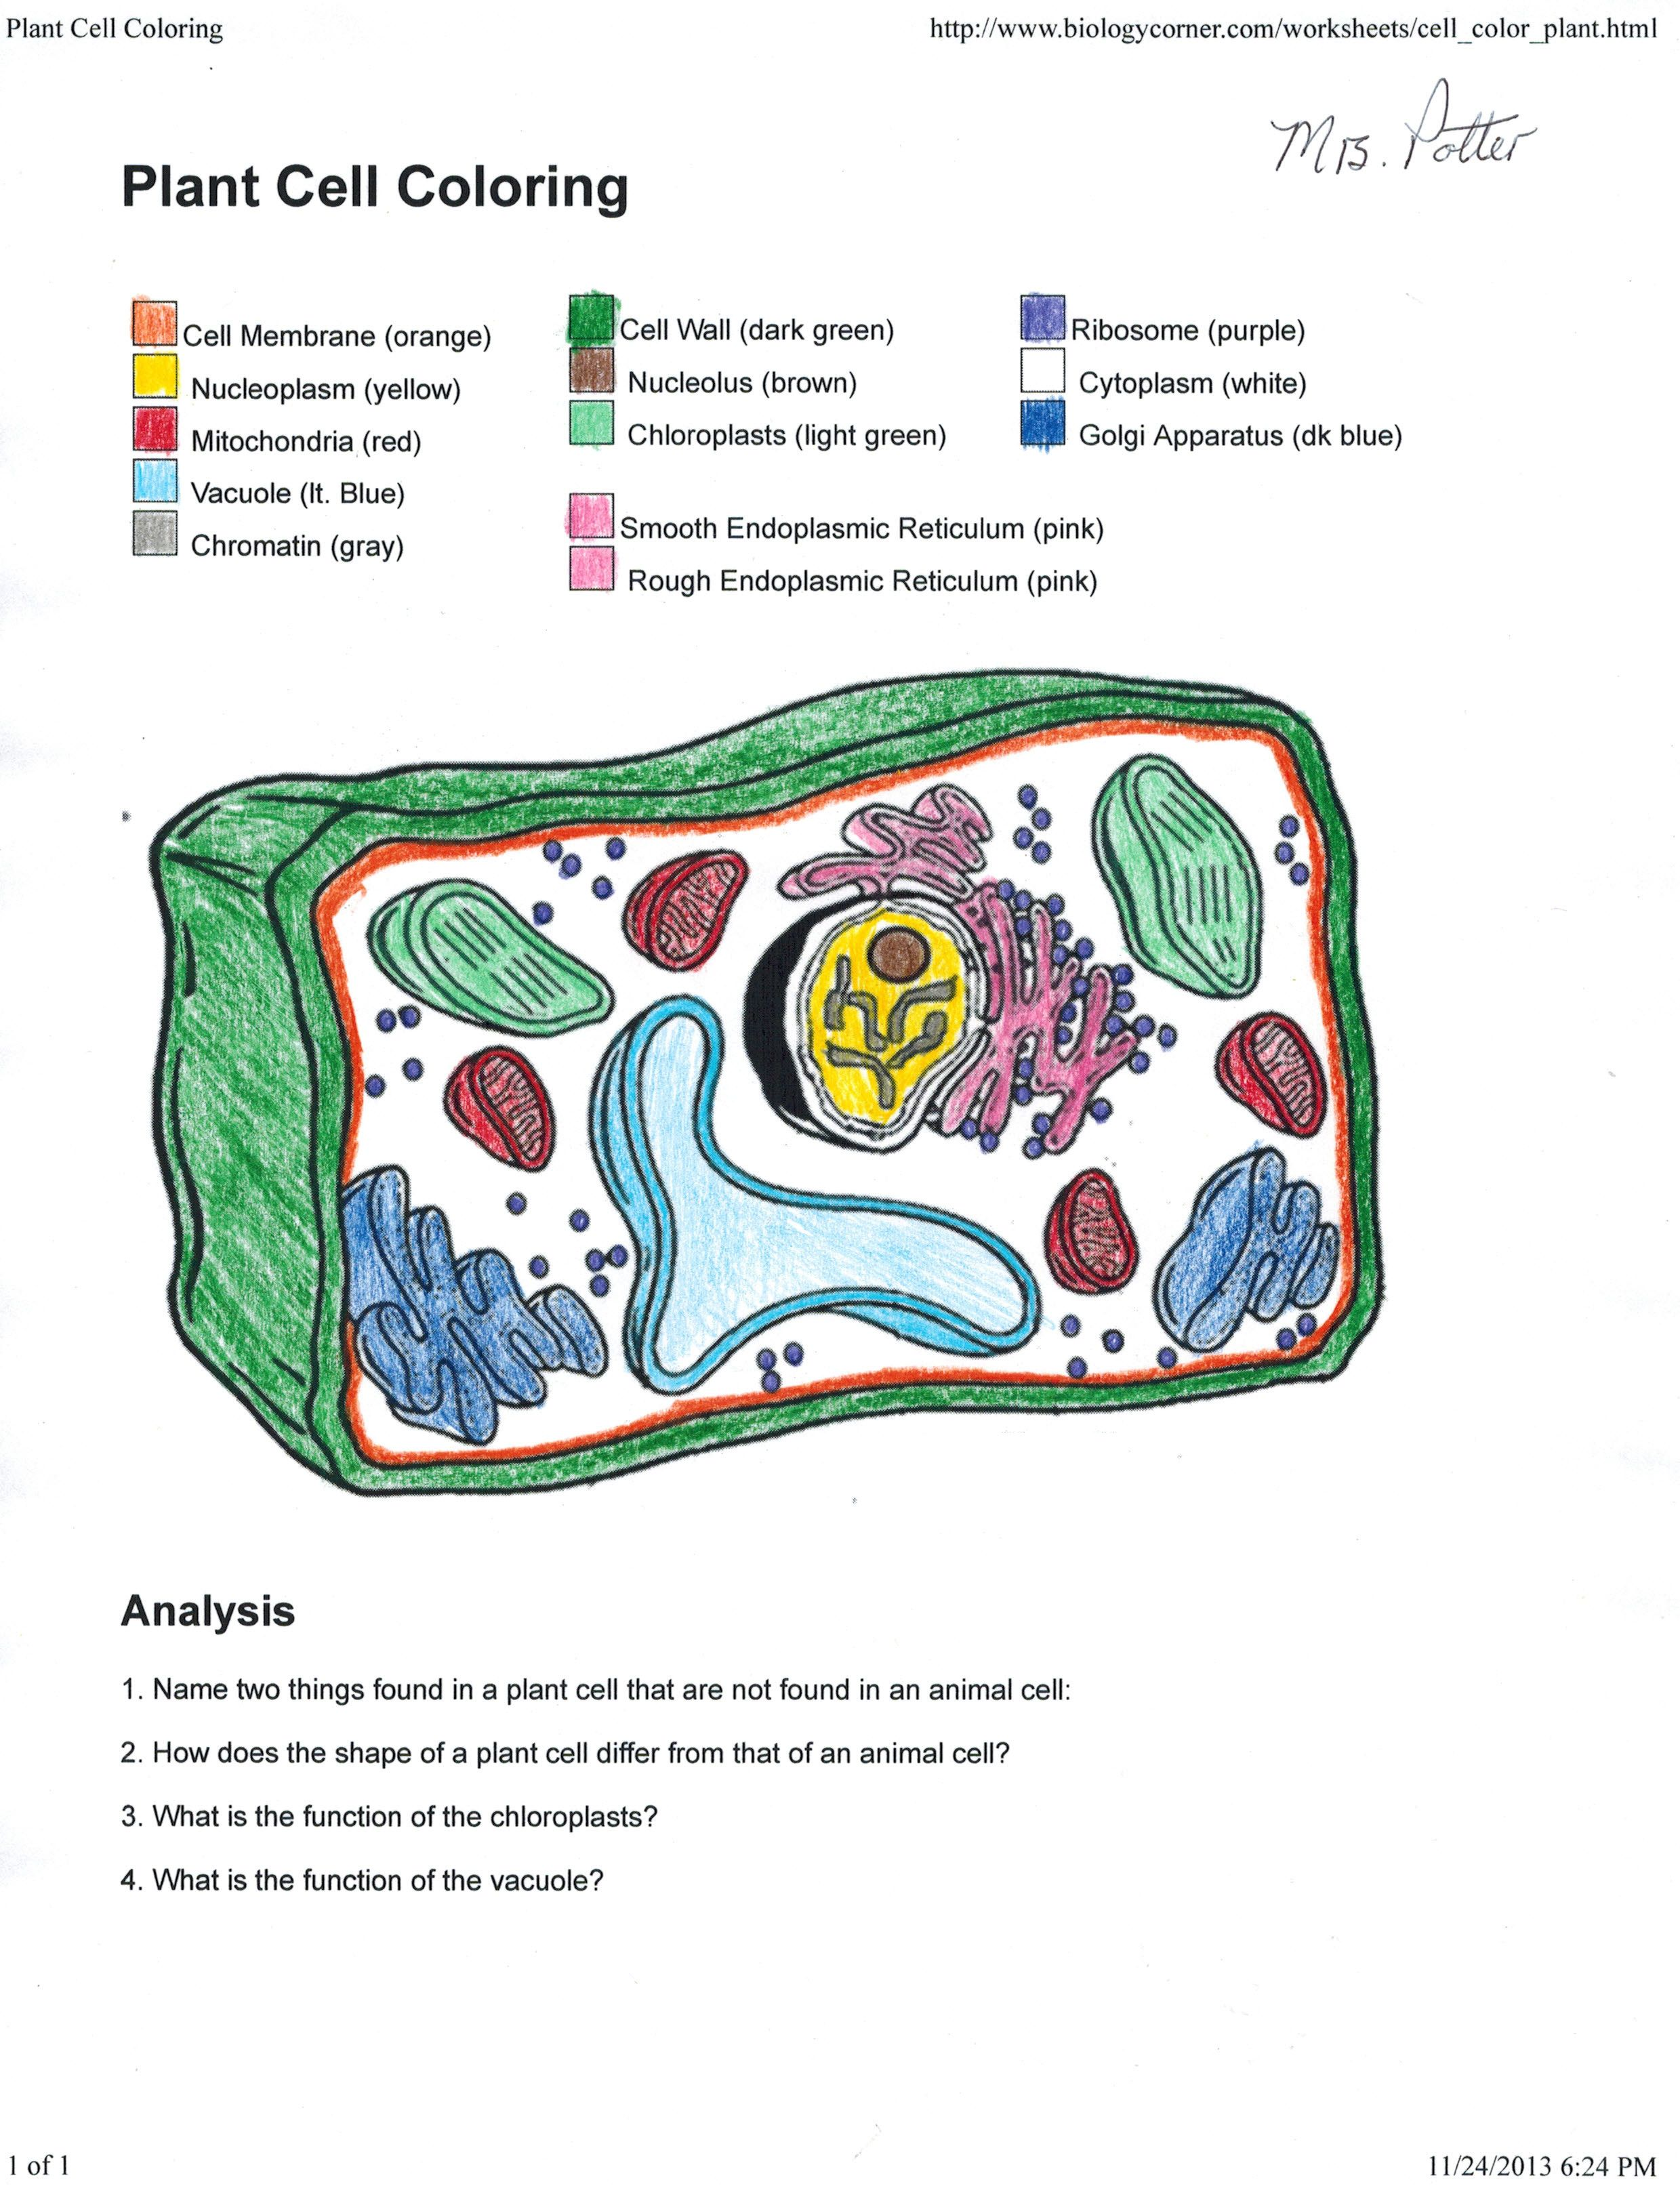 Plant Cell Coloring Key 0 On Plant Cell Coloring Key With Images